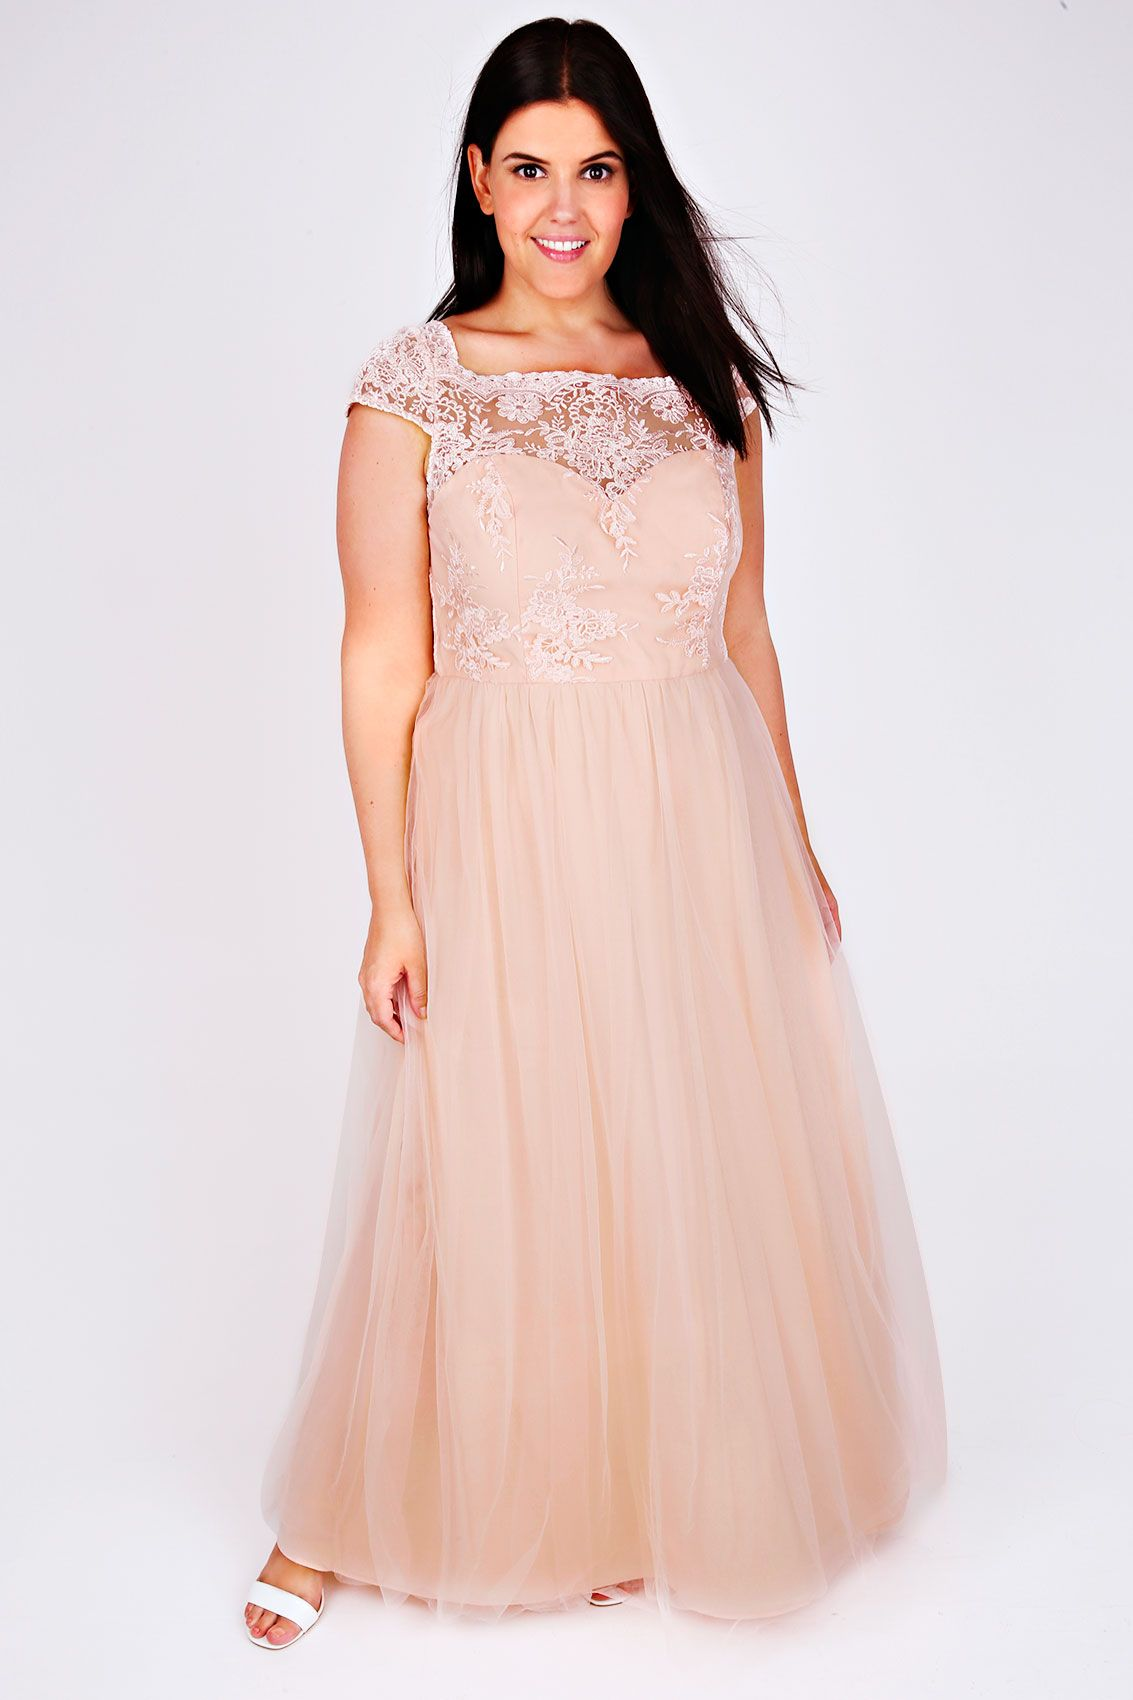 CHI CHI LONDON Nude Embroidered Party Dress | Plus Size Dresses ...